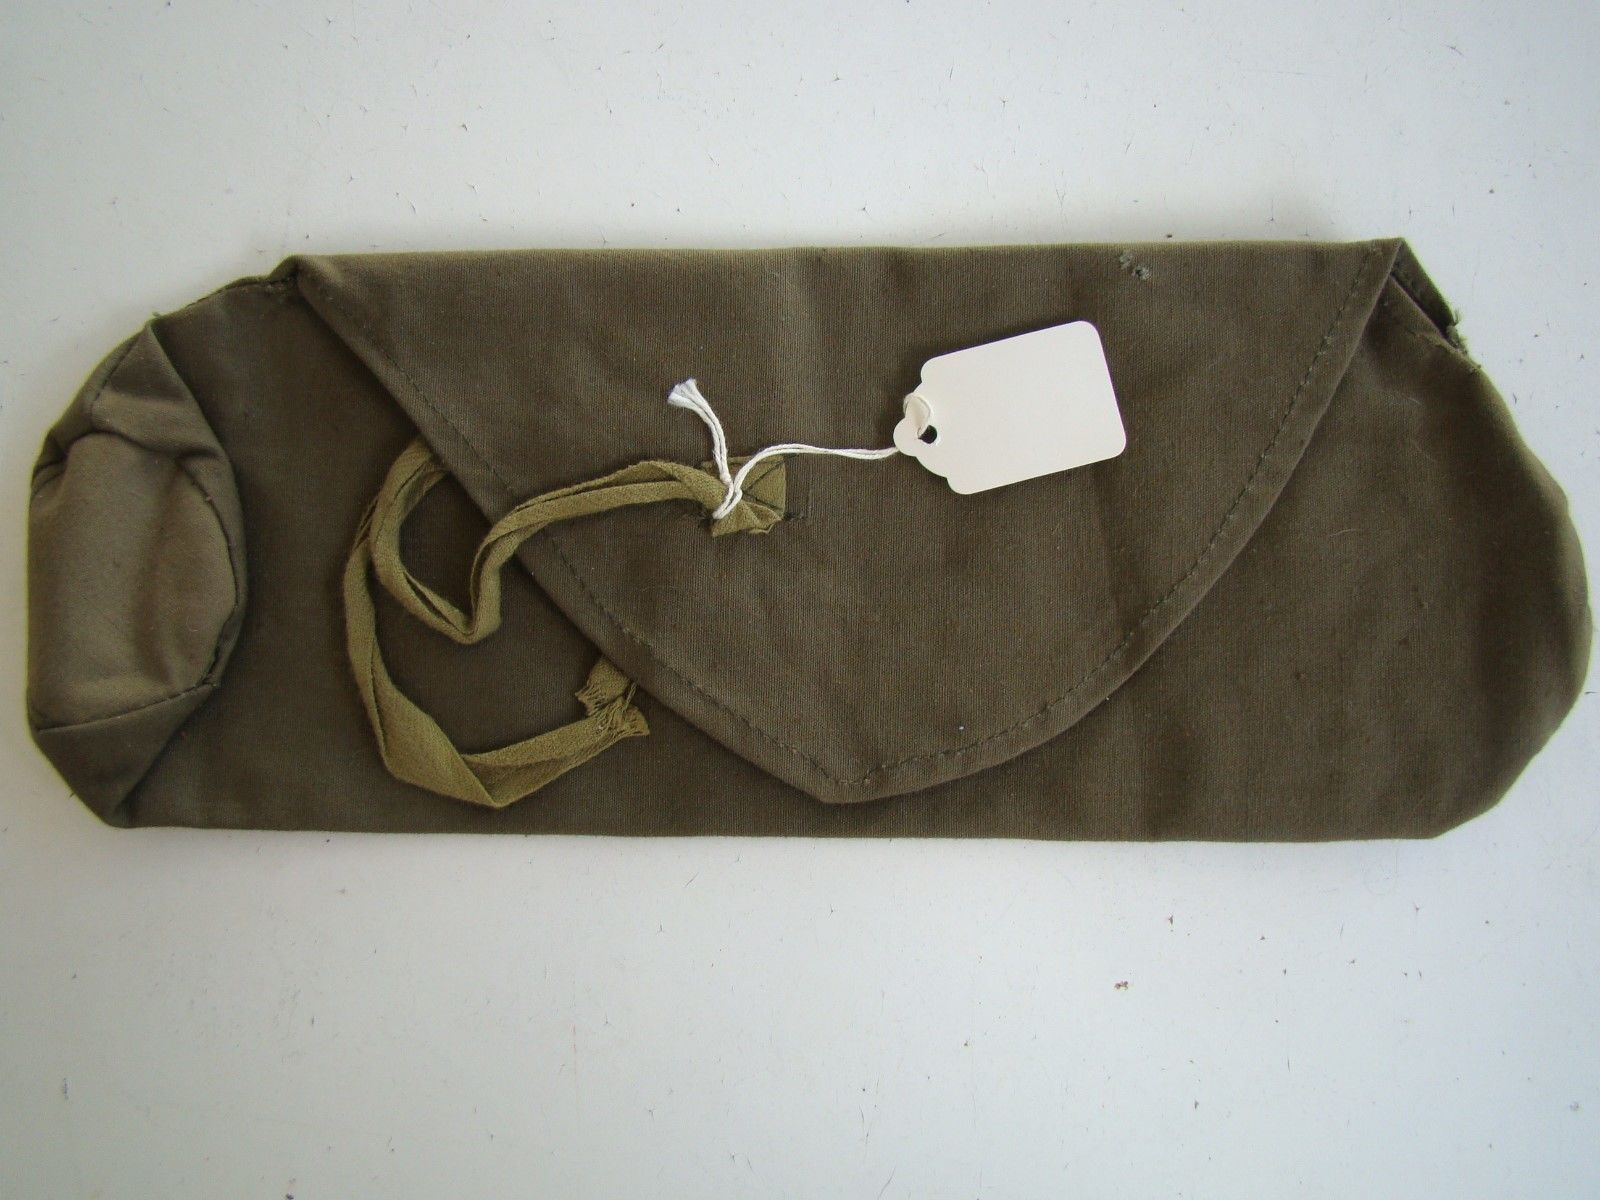 USSR CCCP SOVIET OPTIC TELESCOPIC SIGHT CARRIER CASE BAG BELOW COST GIVE-A-WAY G - $28.70